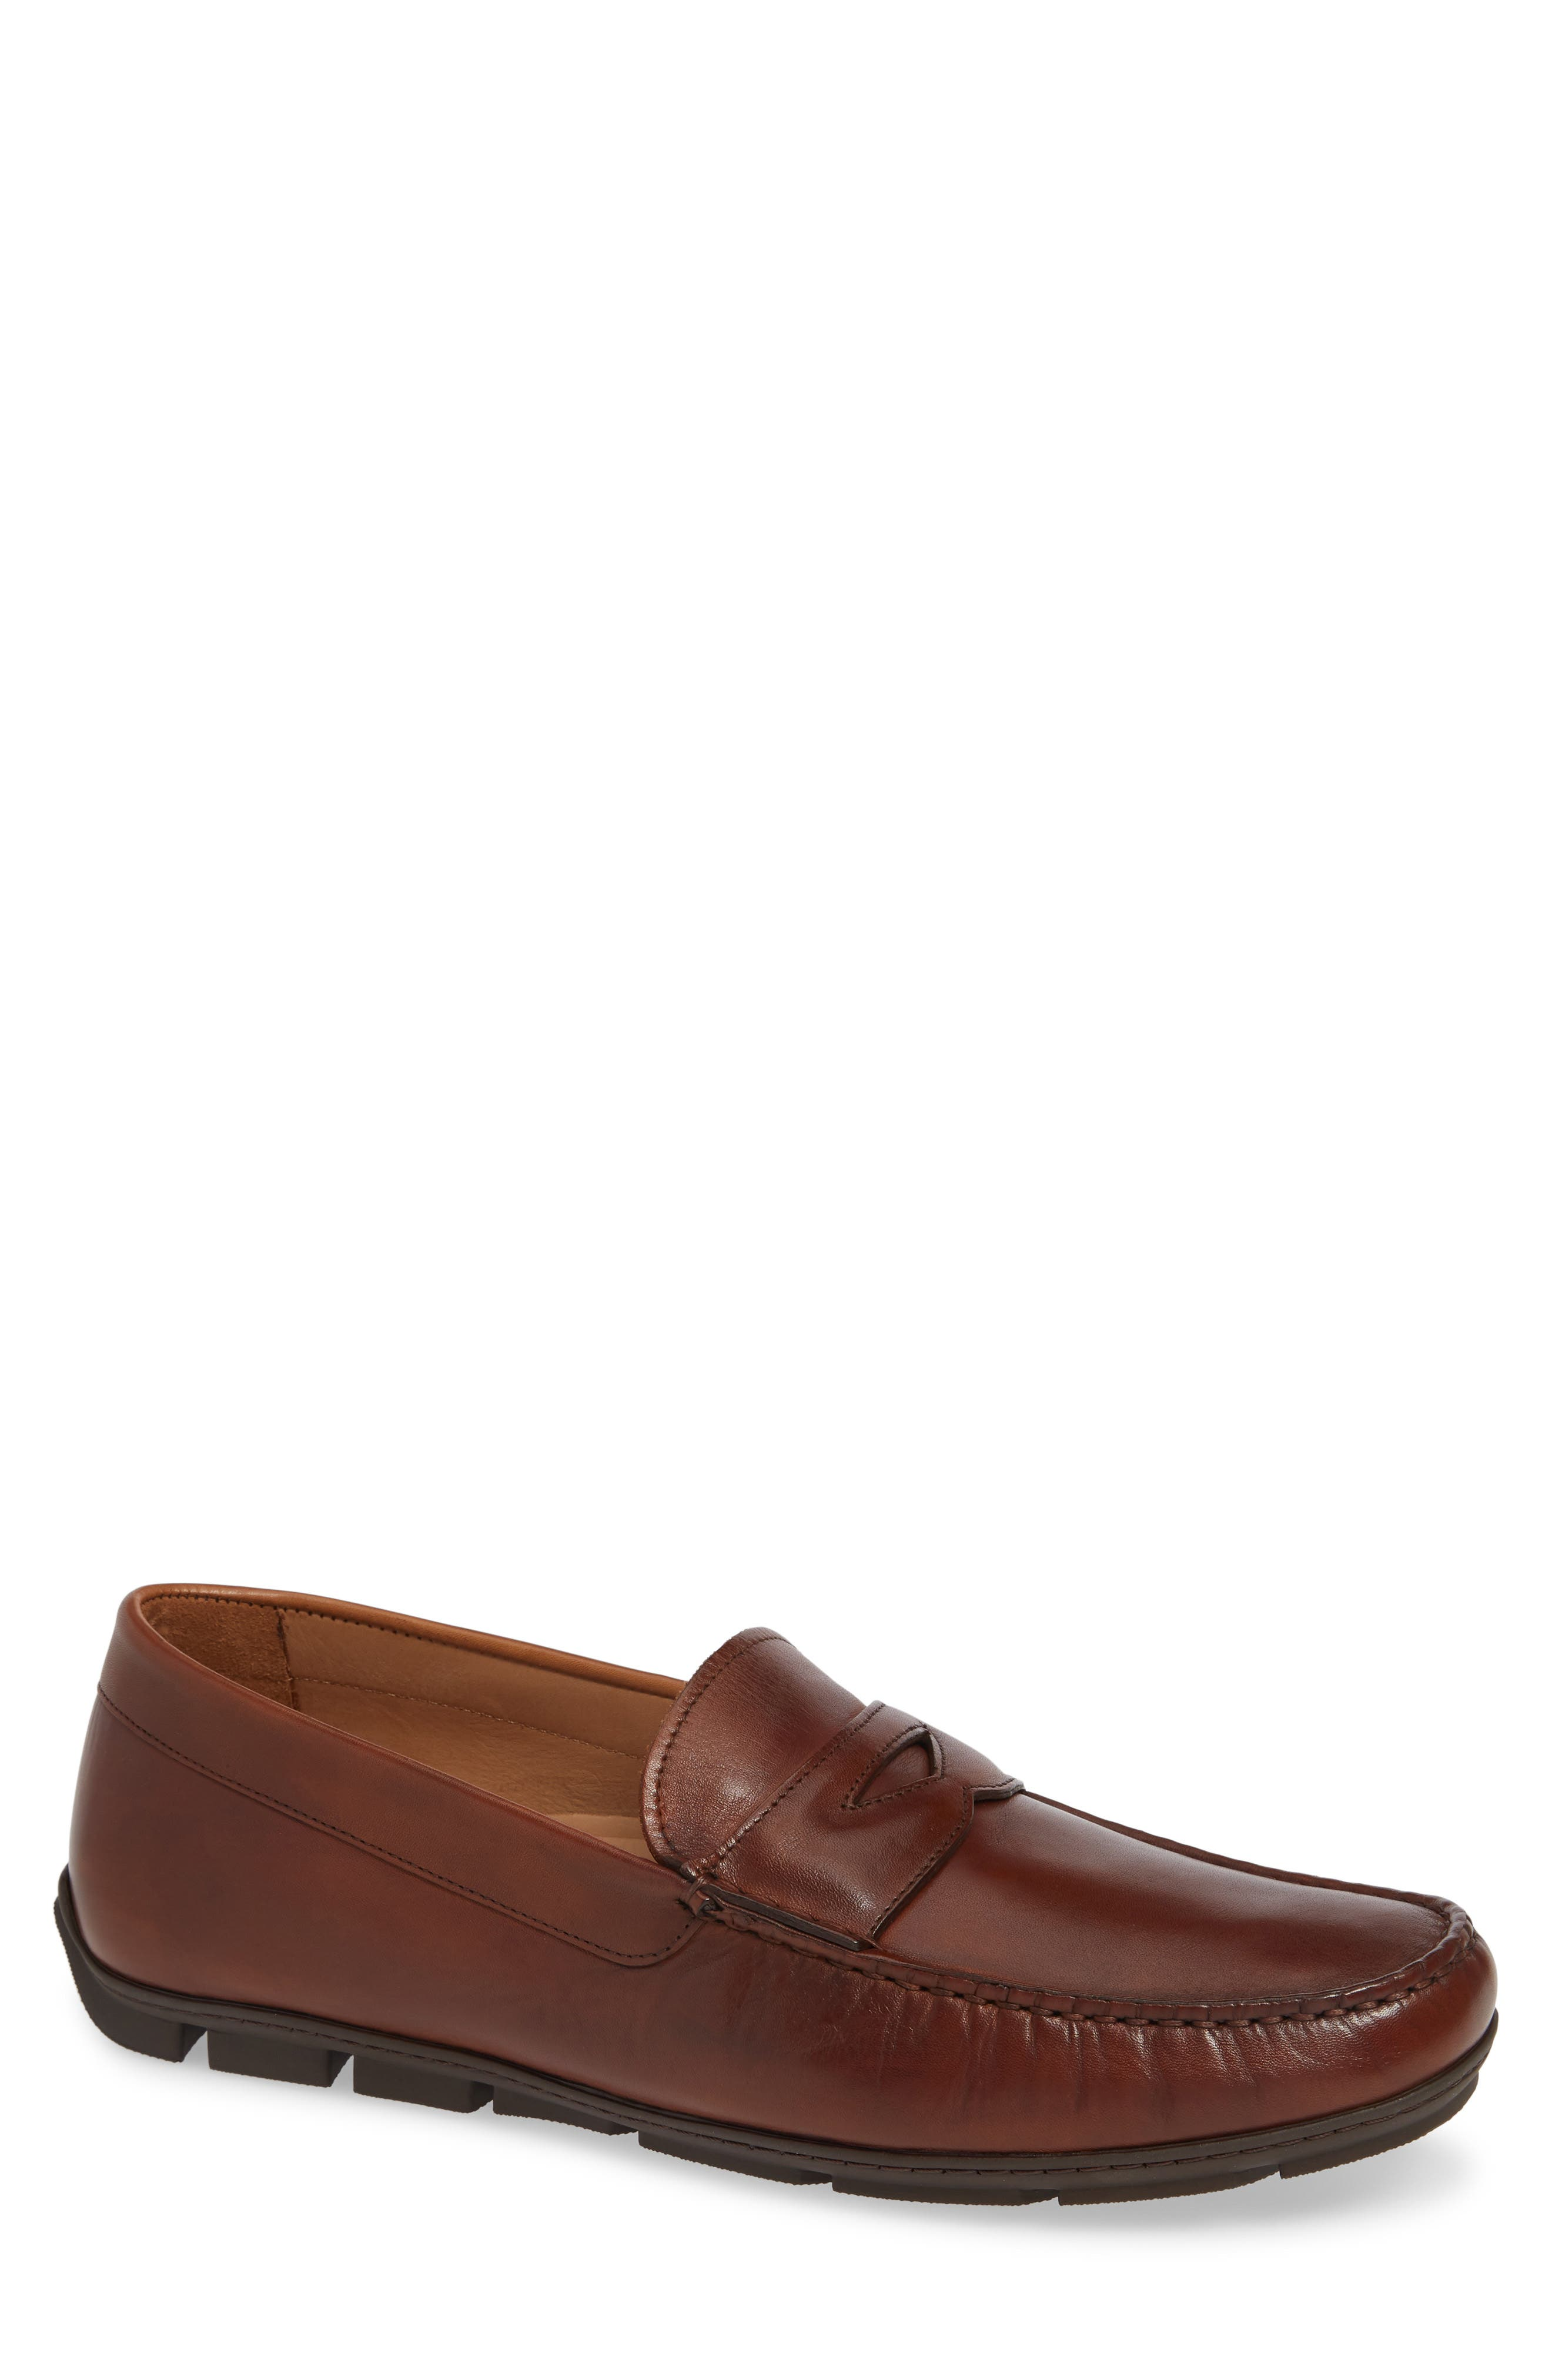 Ditto Driving Shoe,                         Main,                         color, COGNAC LEATHER